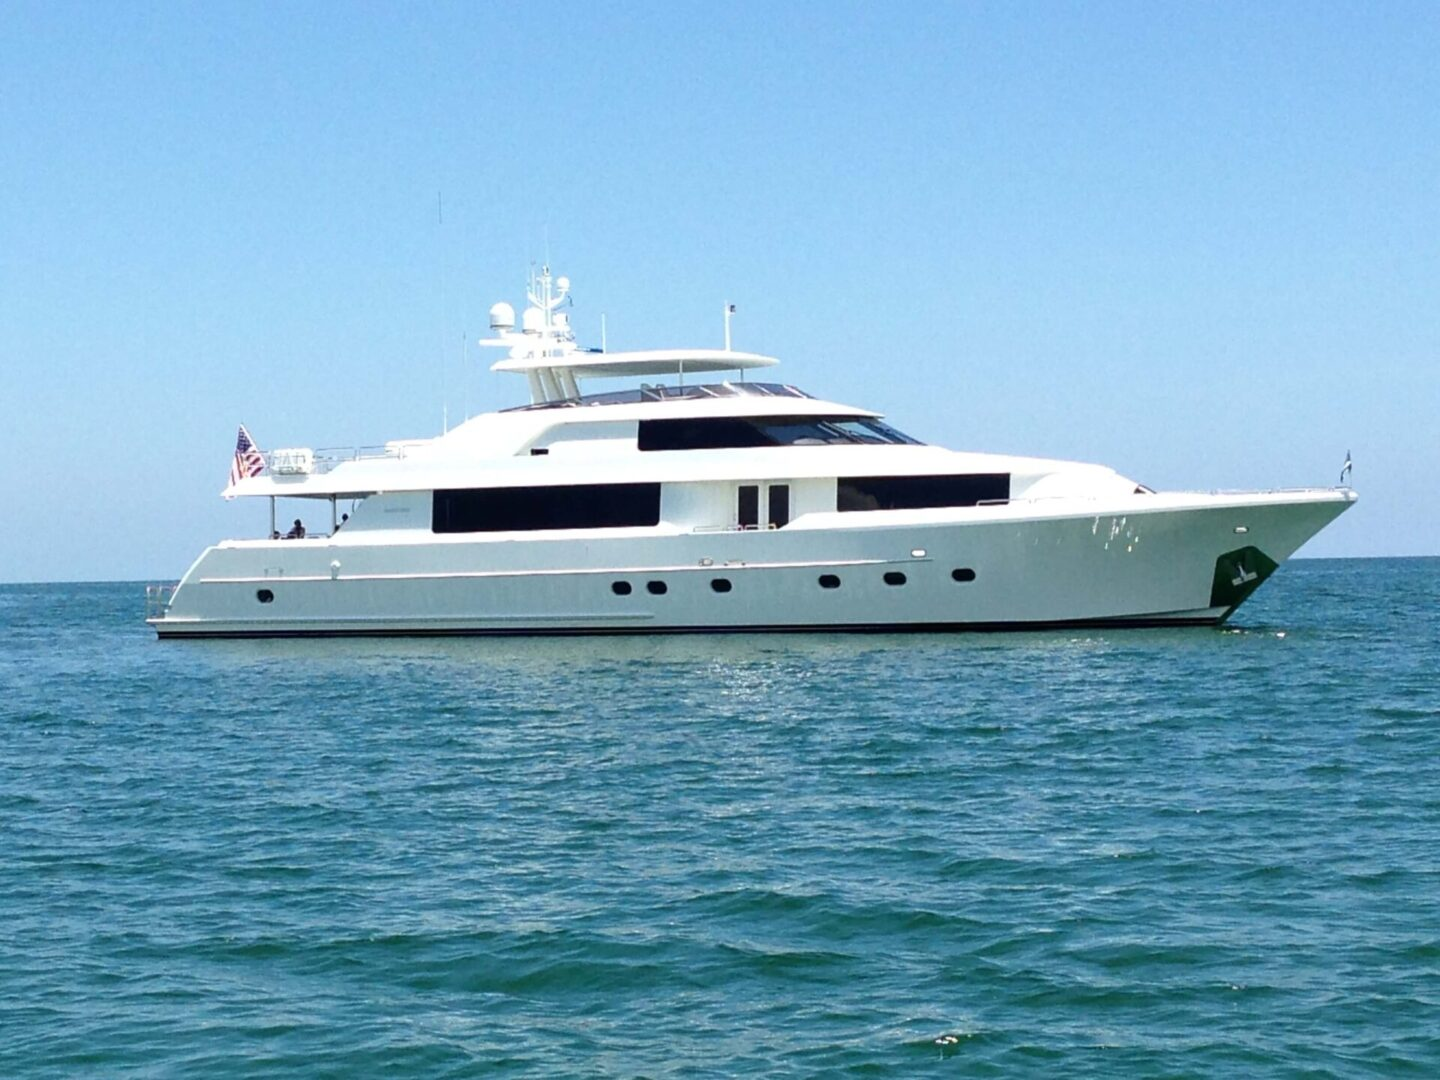 A high-end yacht on water